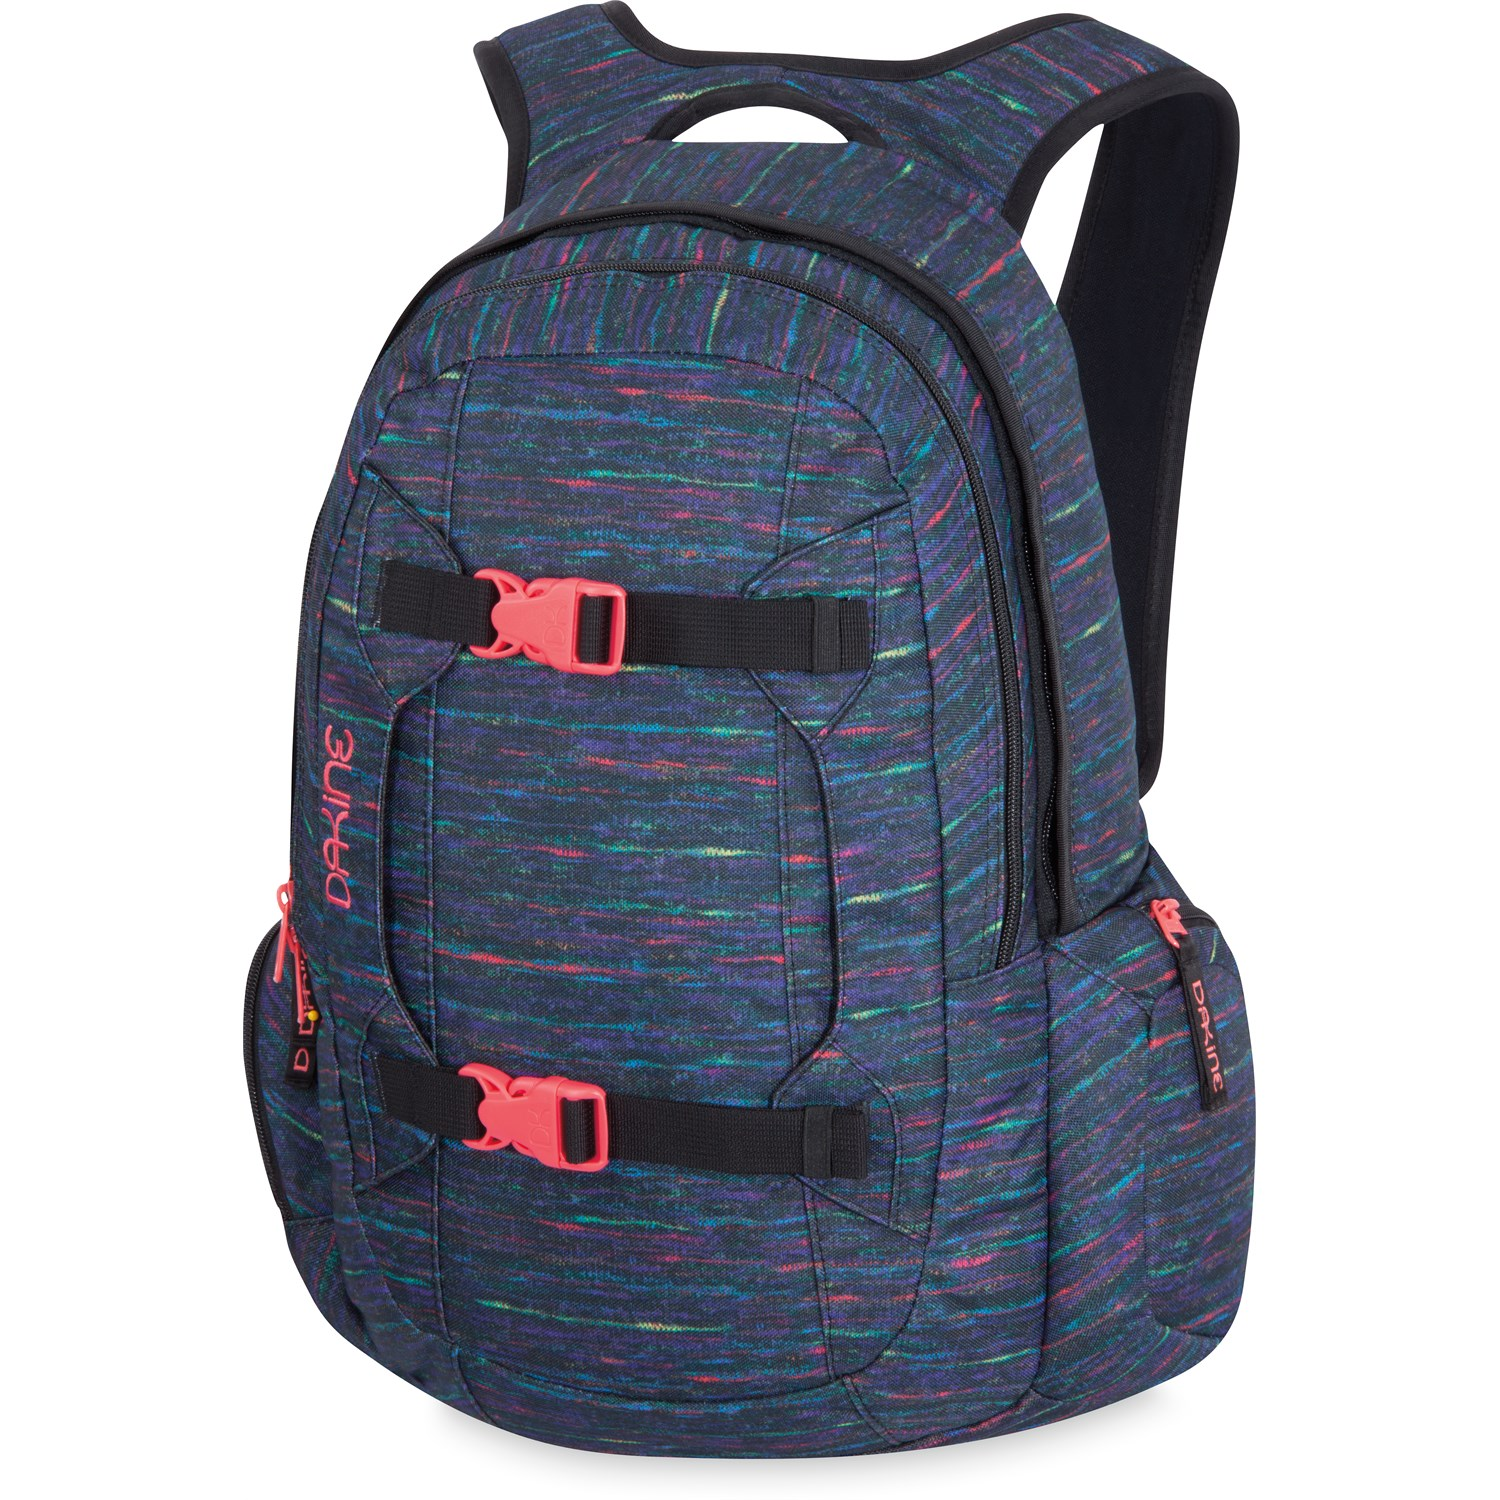 DaKine Mission Backpack - Women's | evo